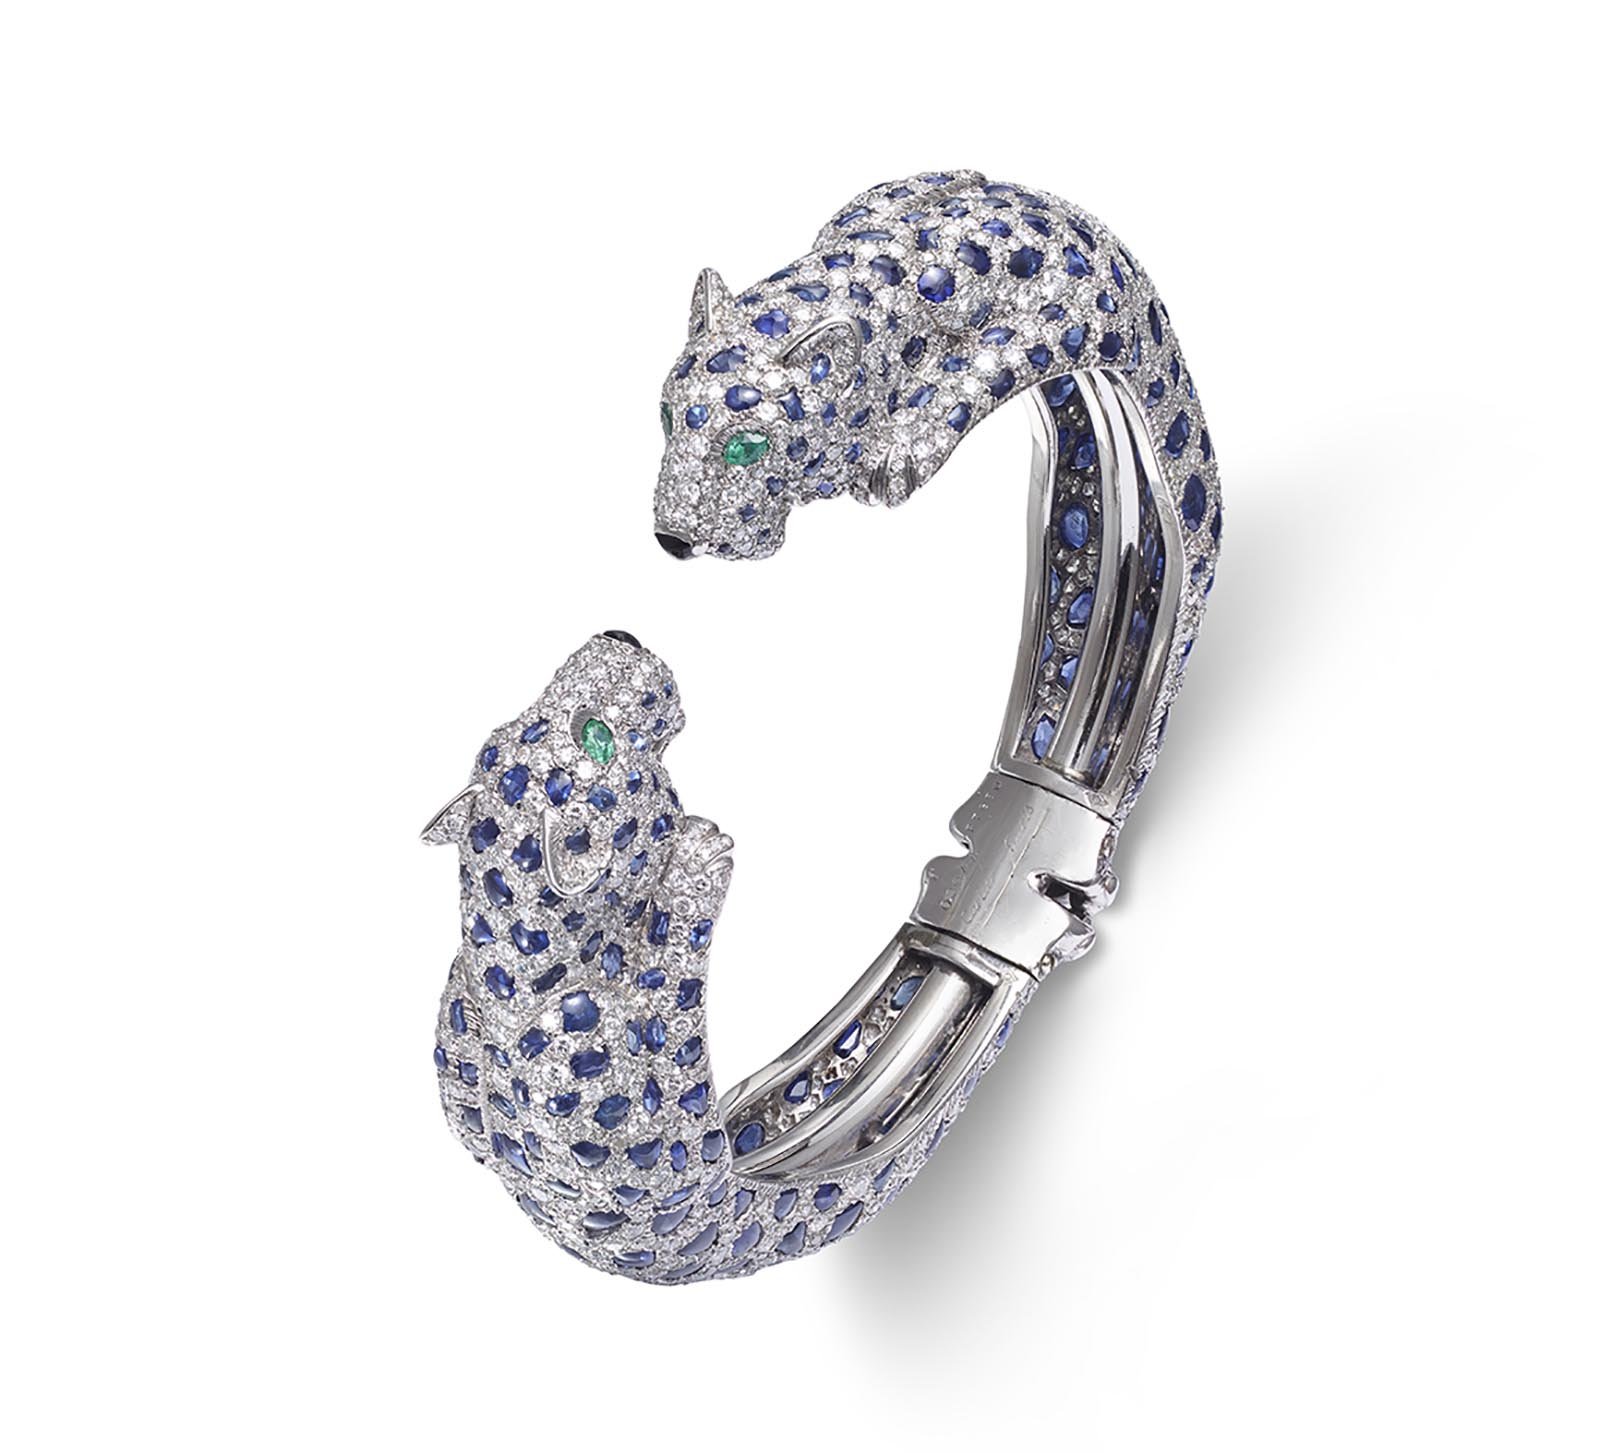 Cartier, Icon of Style - Nina Dyer - Panther Bangle